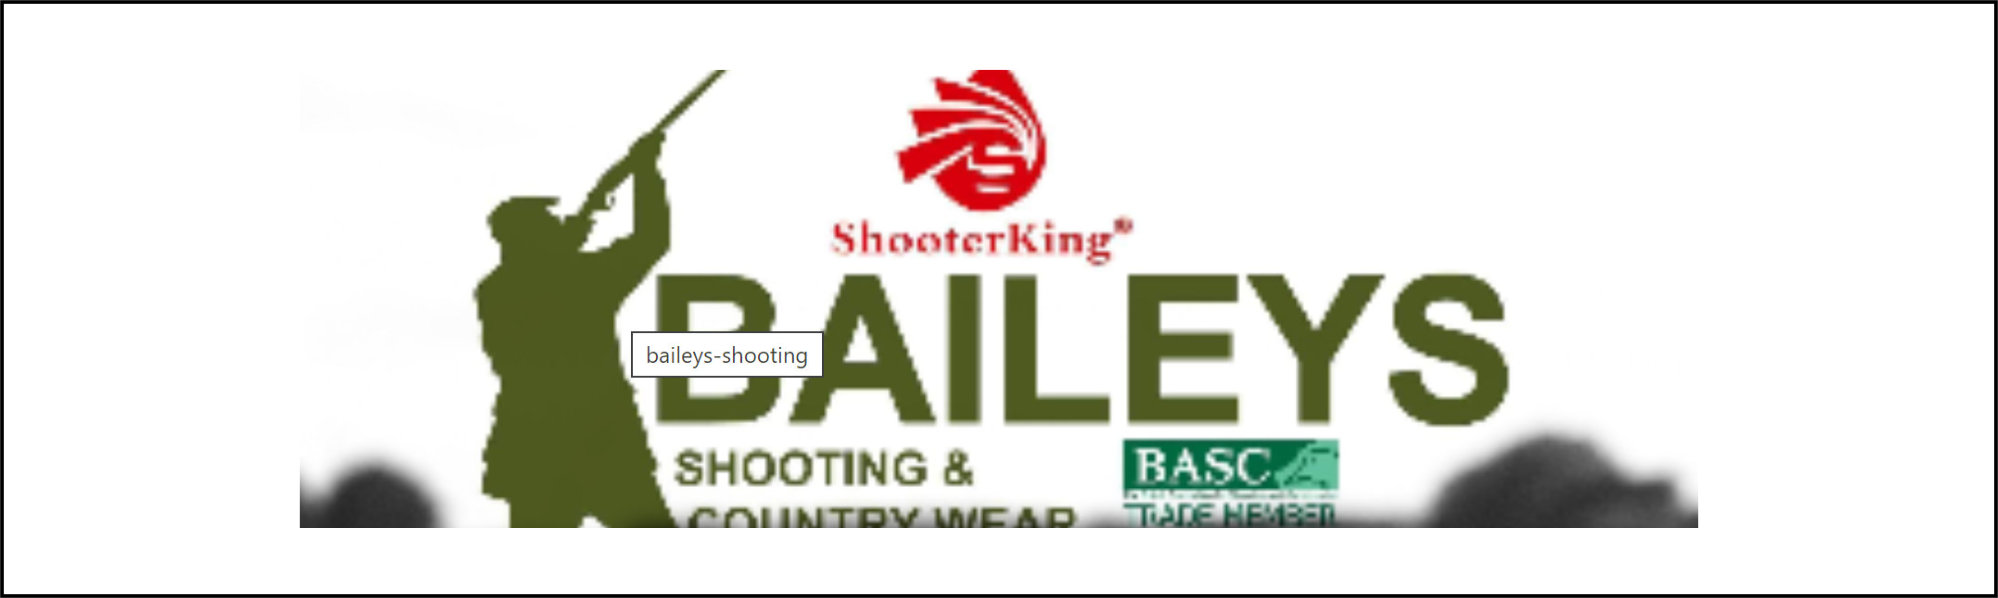 Baileys Shooting And Country Wear